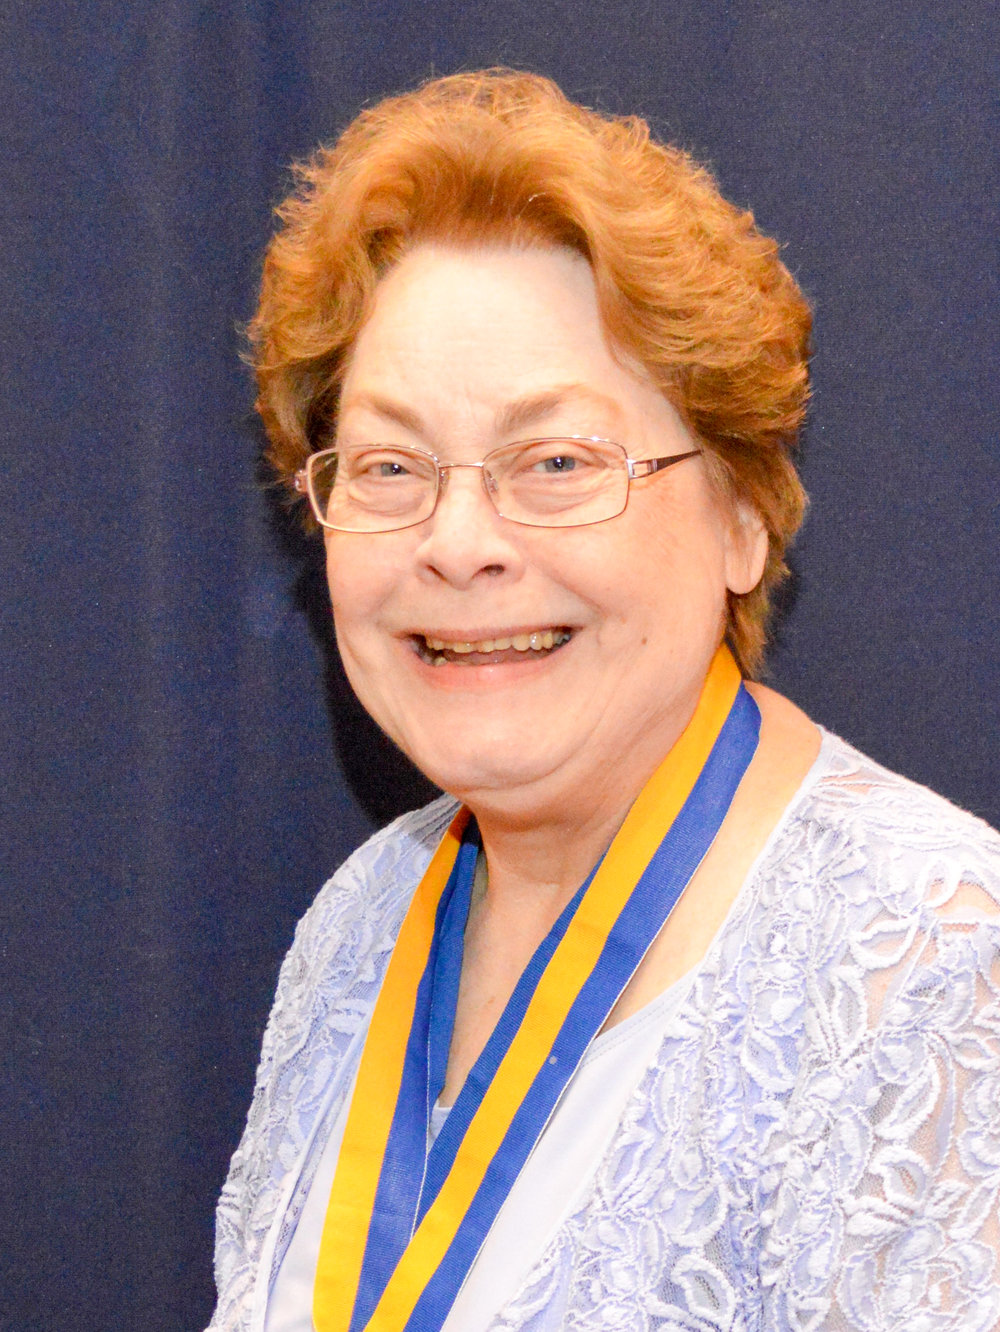 Barbara Hente - Secretary, Fellow Committee Chair, Registration Committee Chair